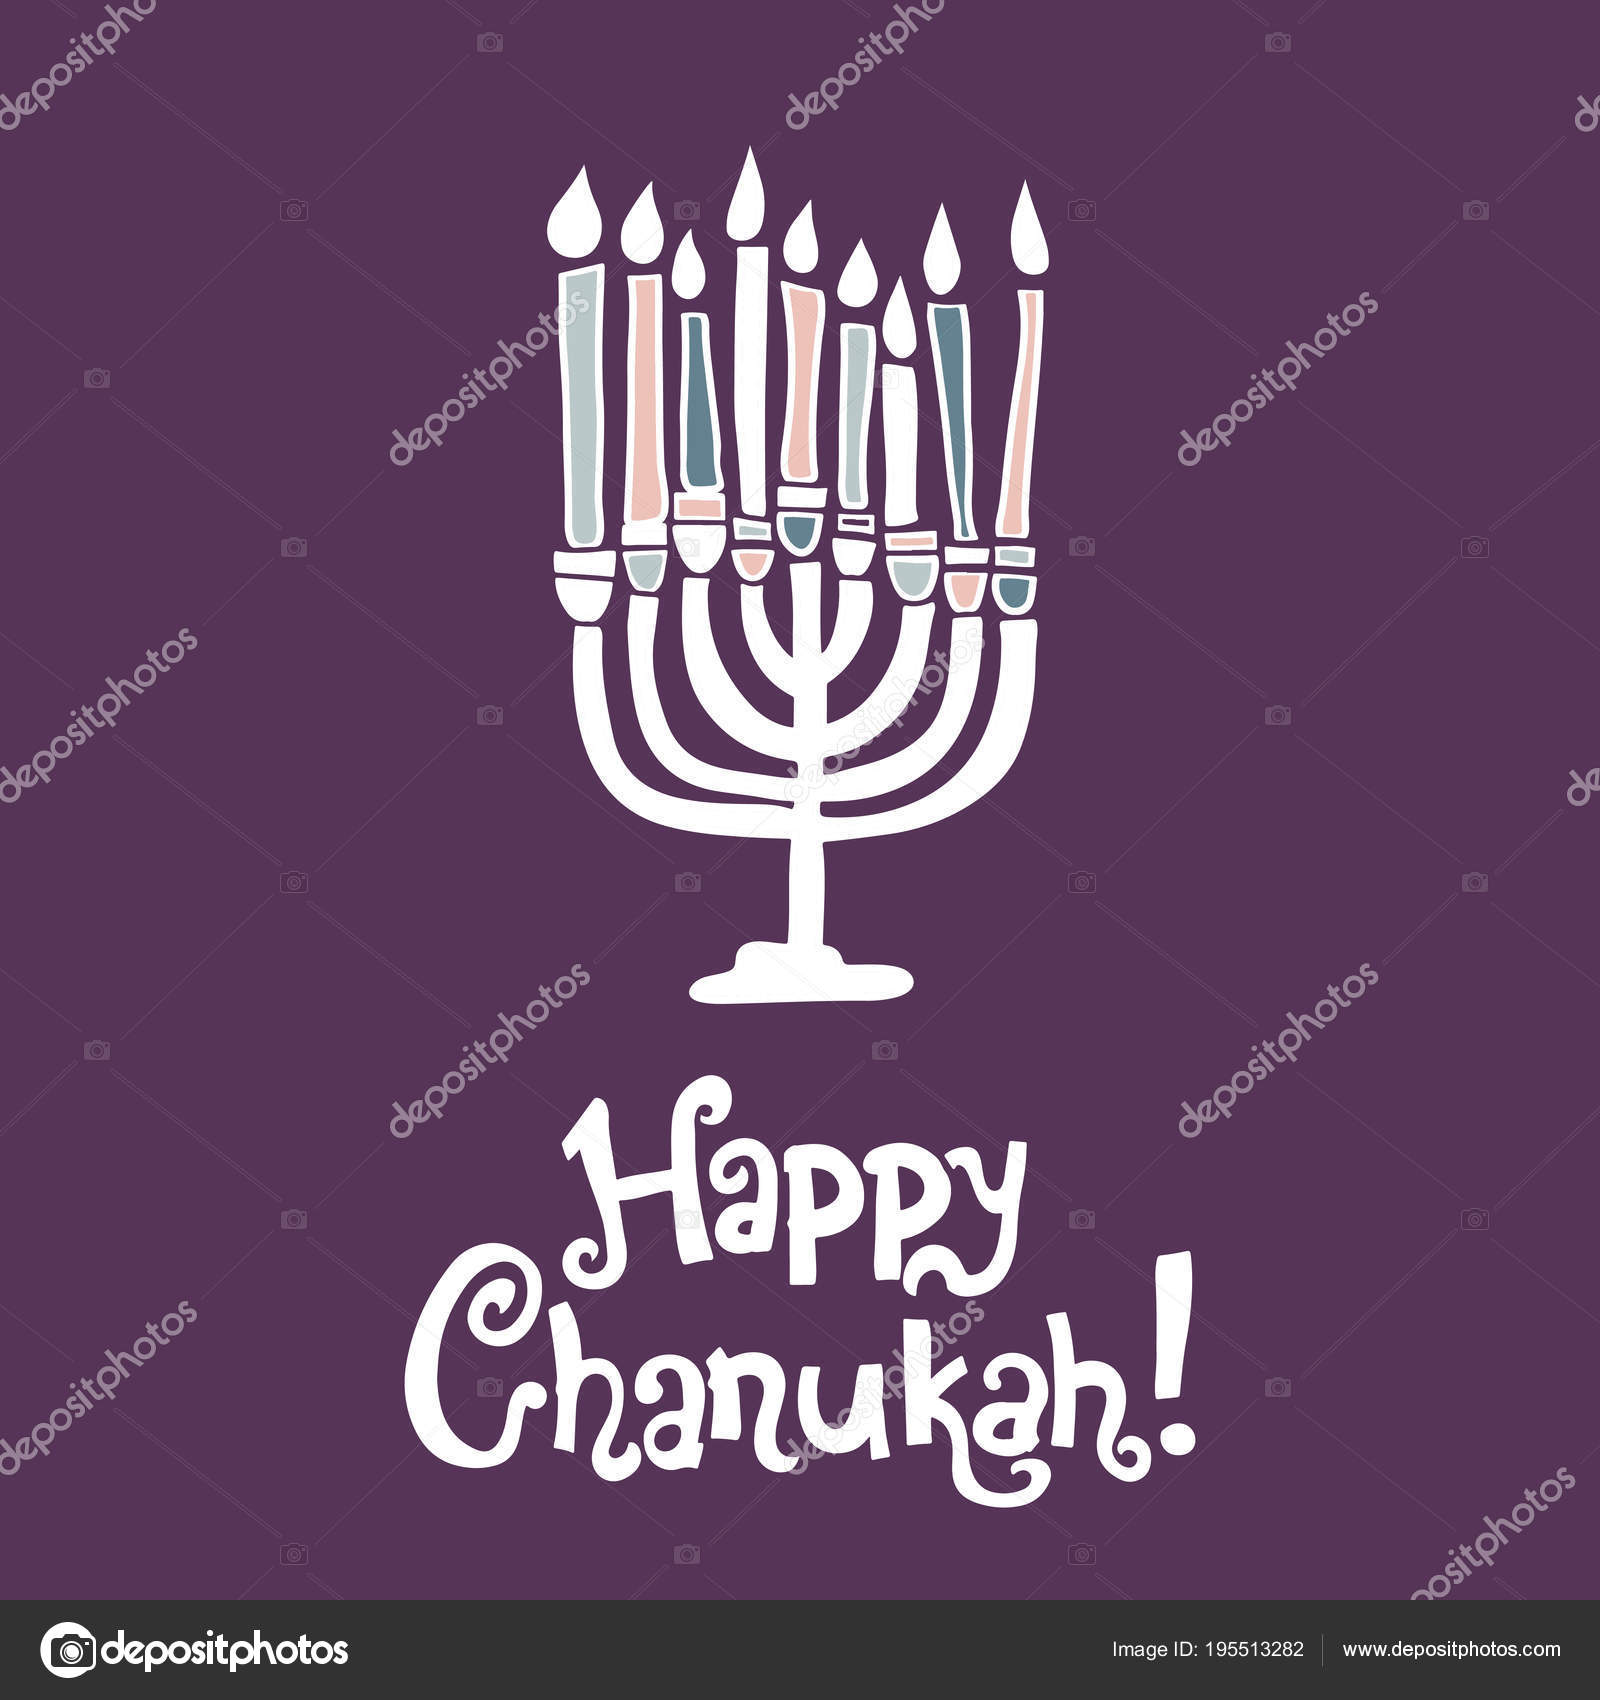 Happy chanukah greeting card stock vector lashmipics 195513282 happy chanukah greeting card stock vector m4hsunfo